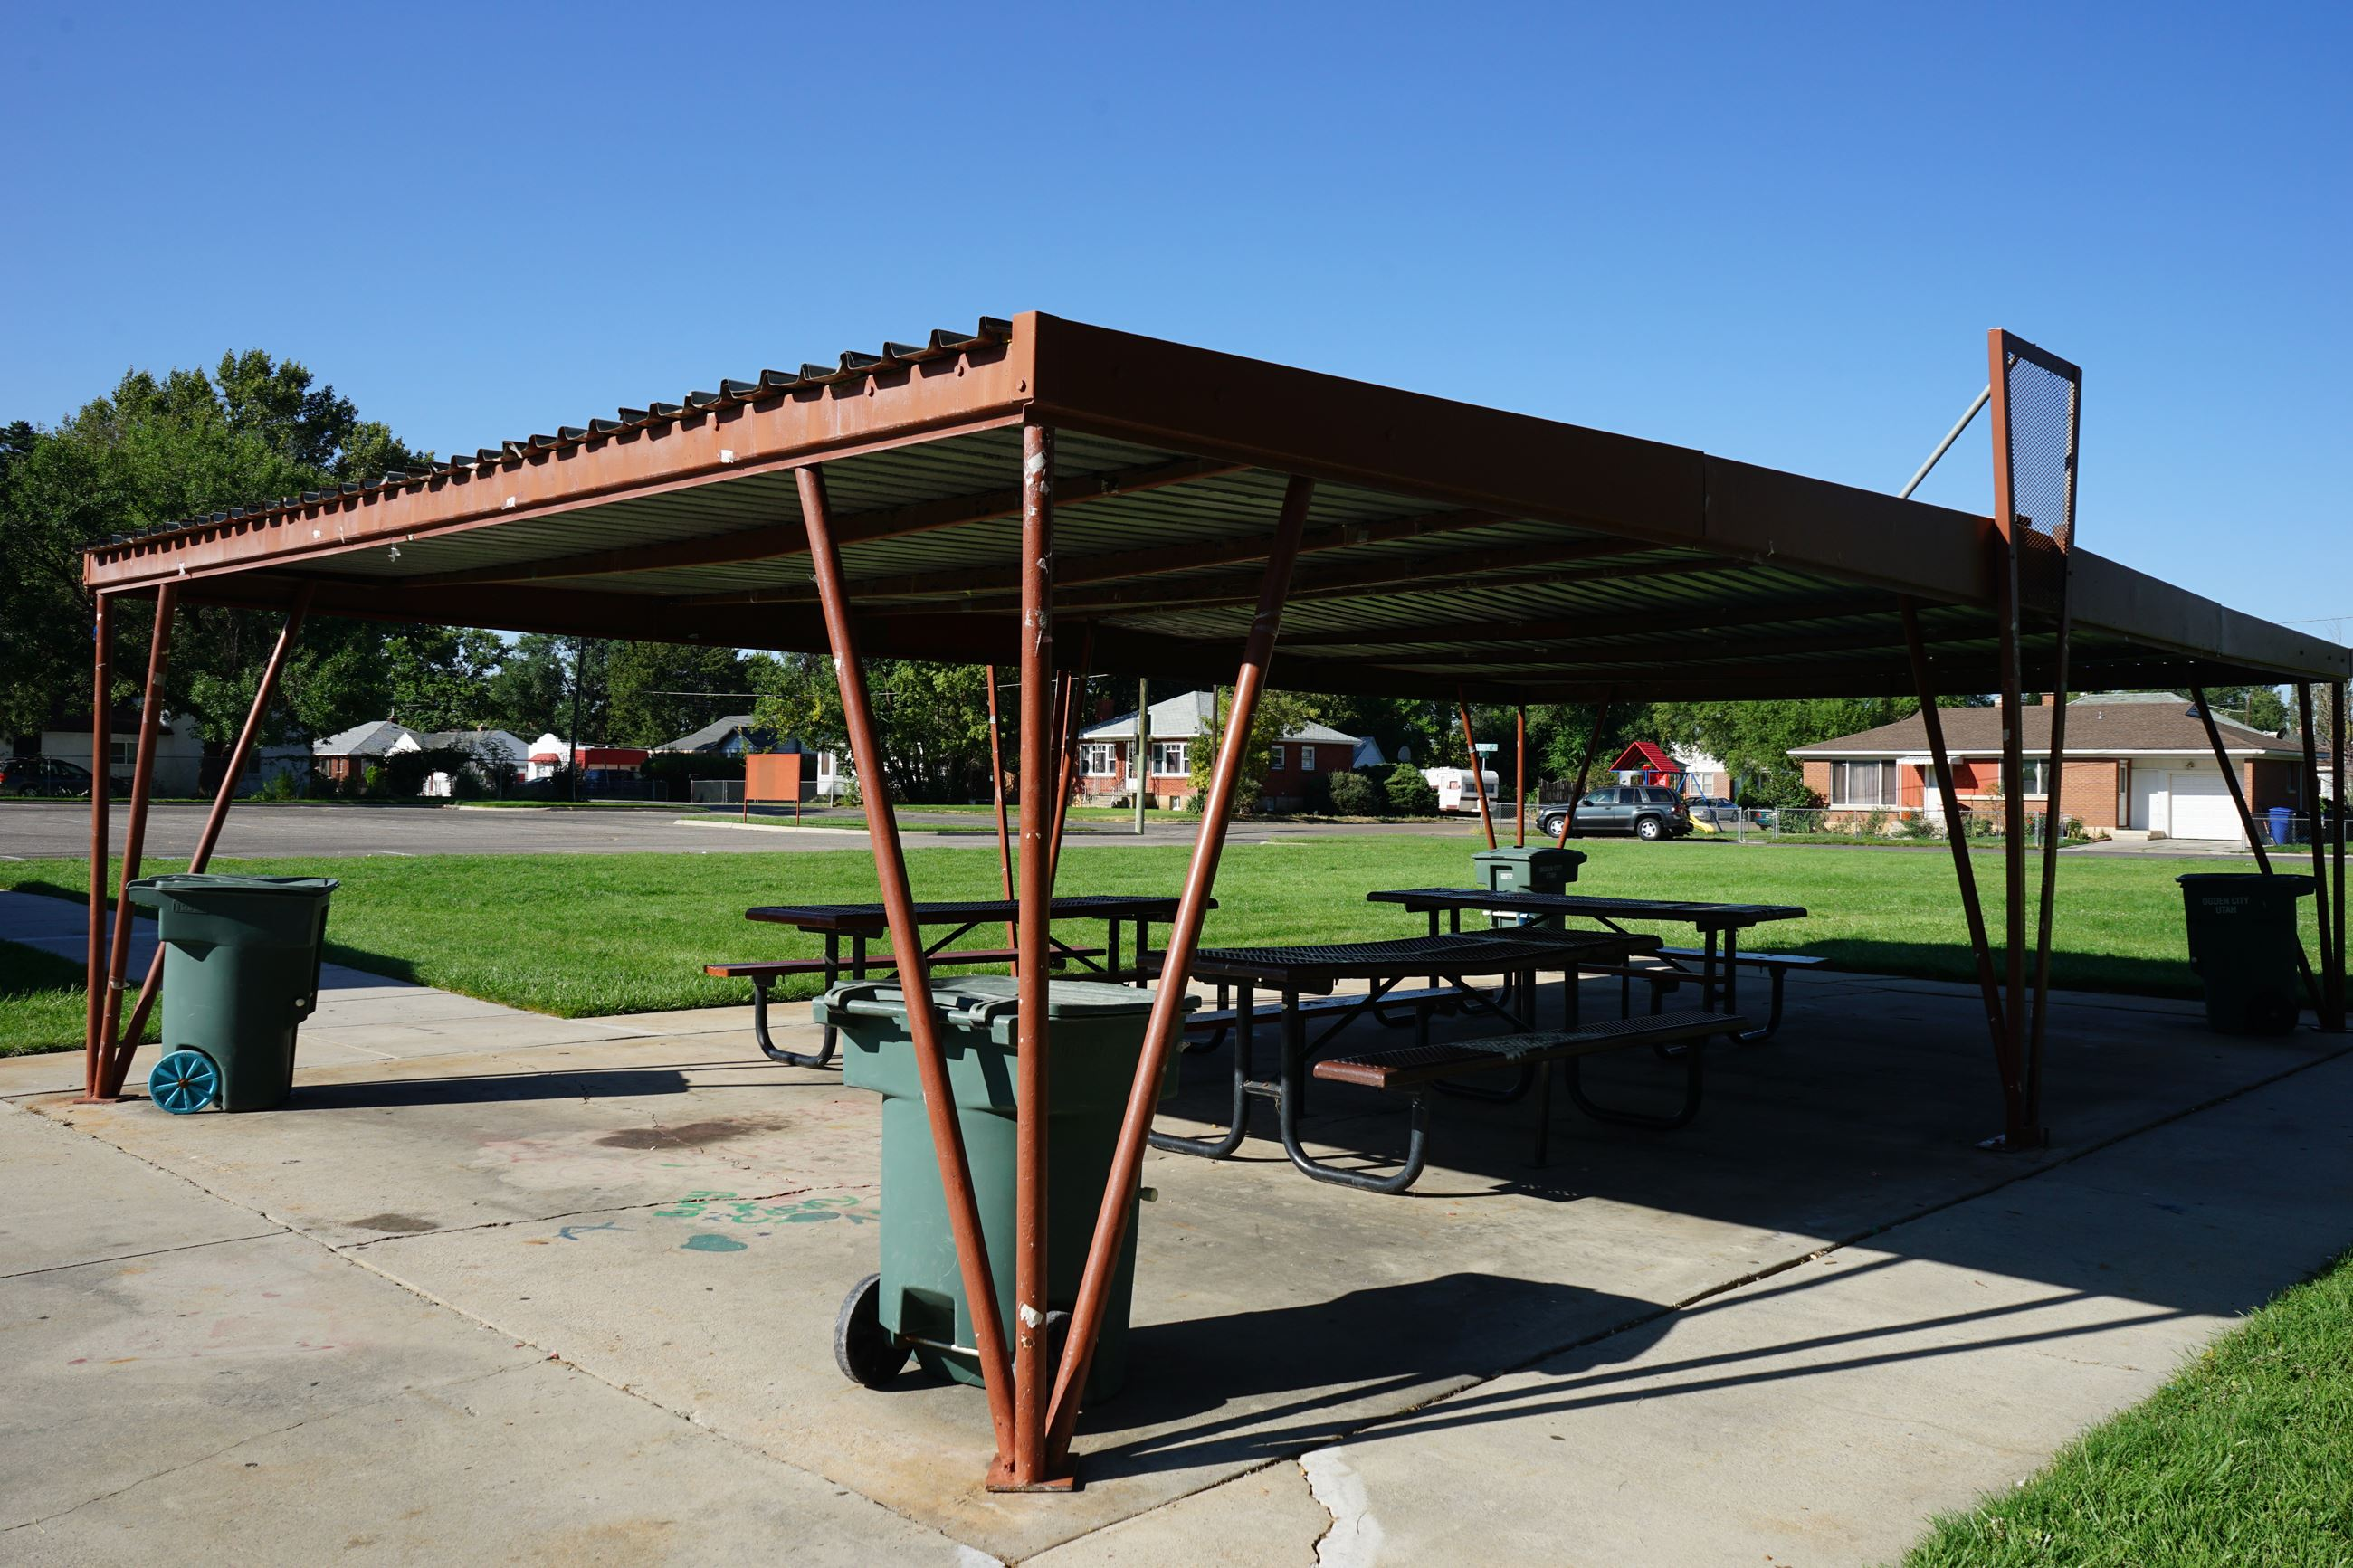 Three tables covered by a metal structure